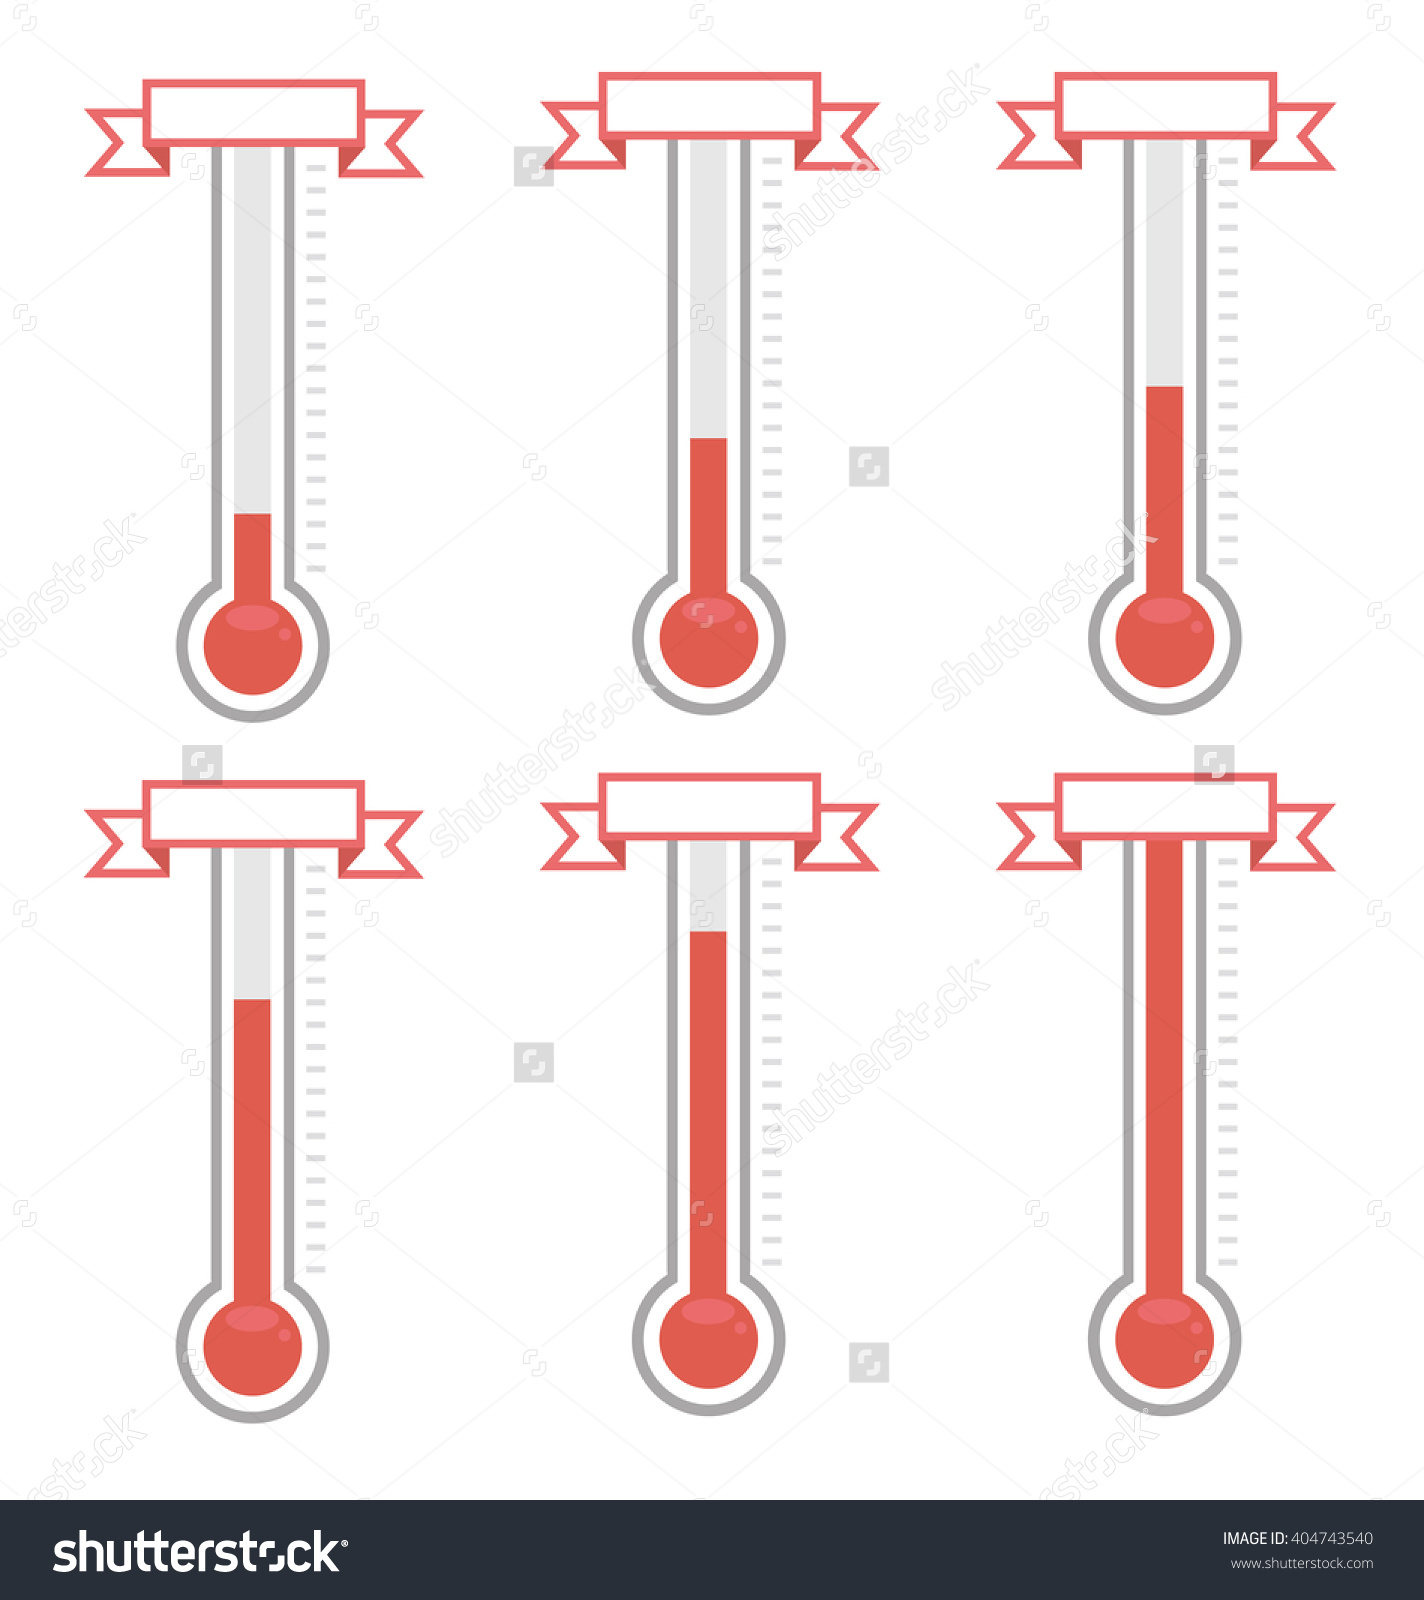 Vector Goal Thermometers Different Levels Stock Vector 404743540.